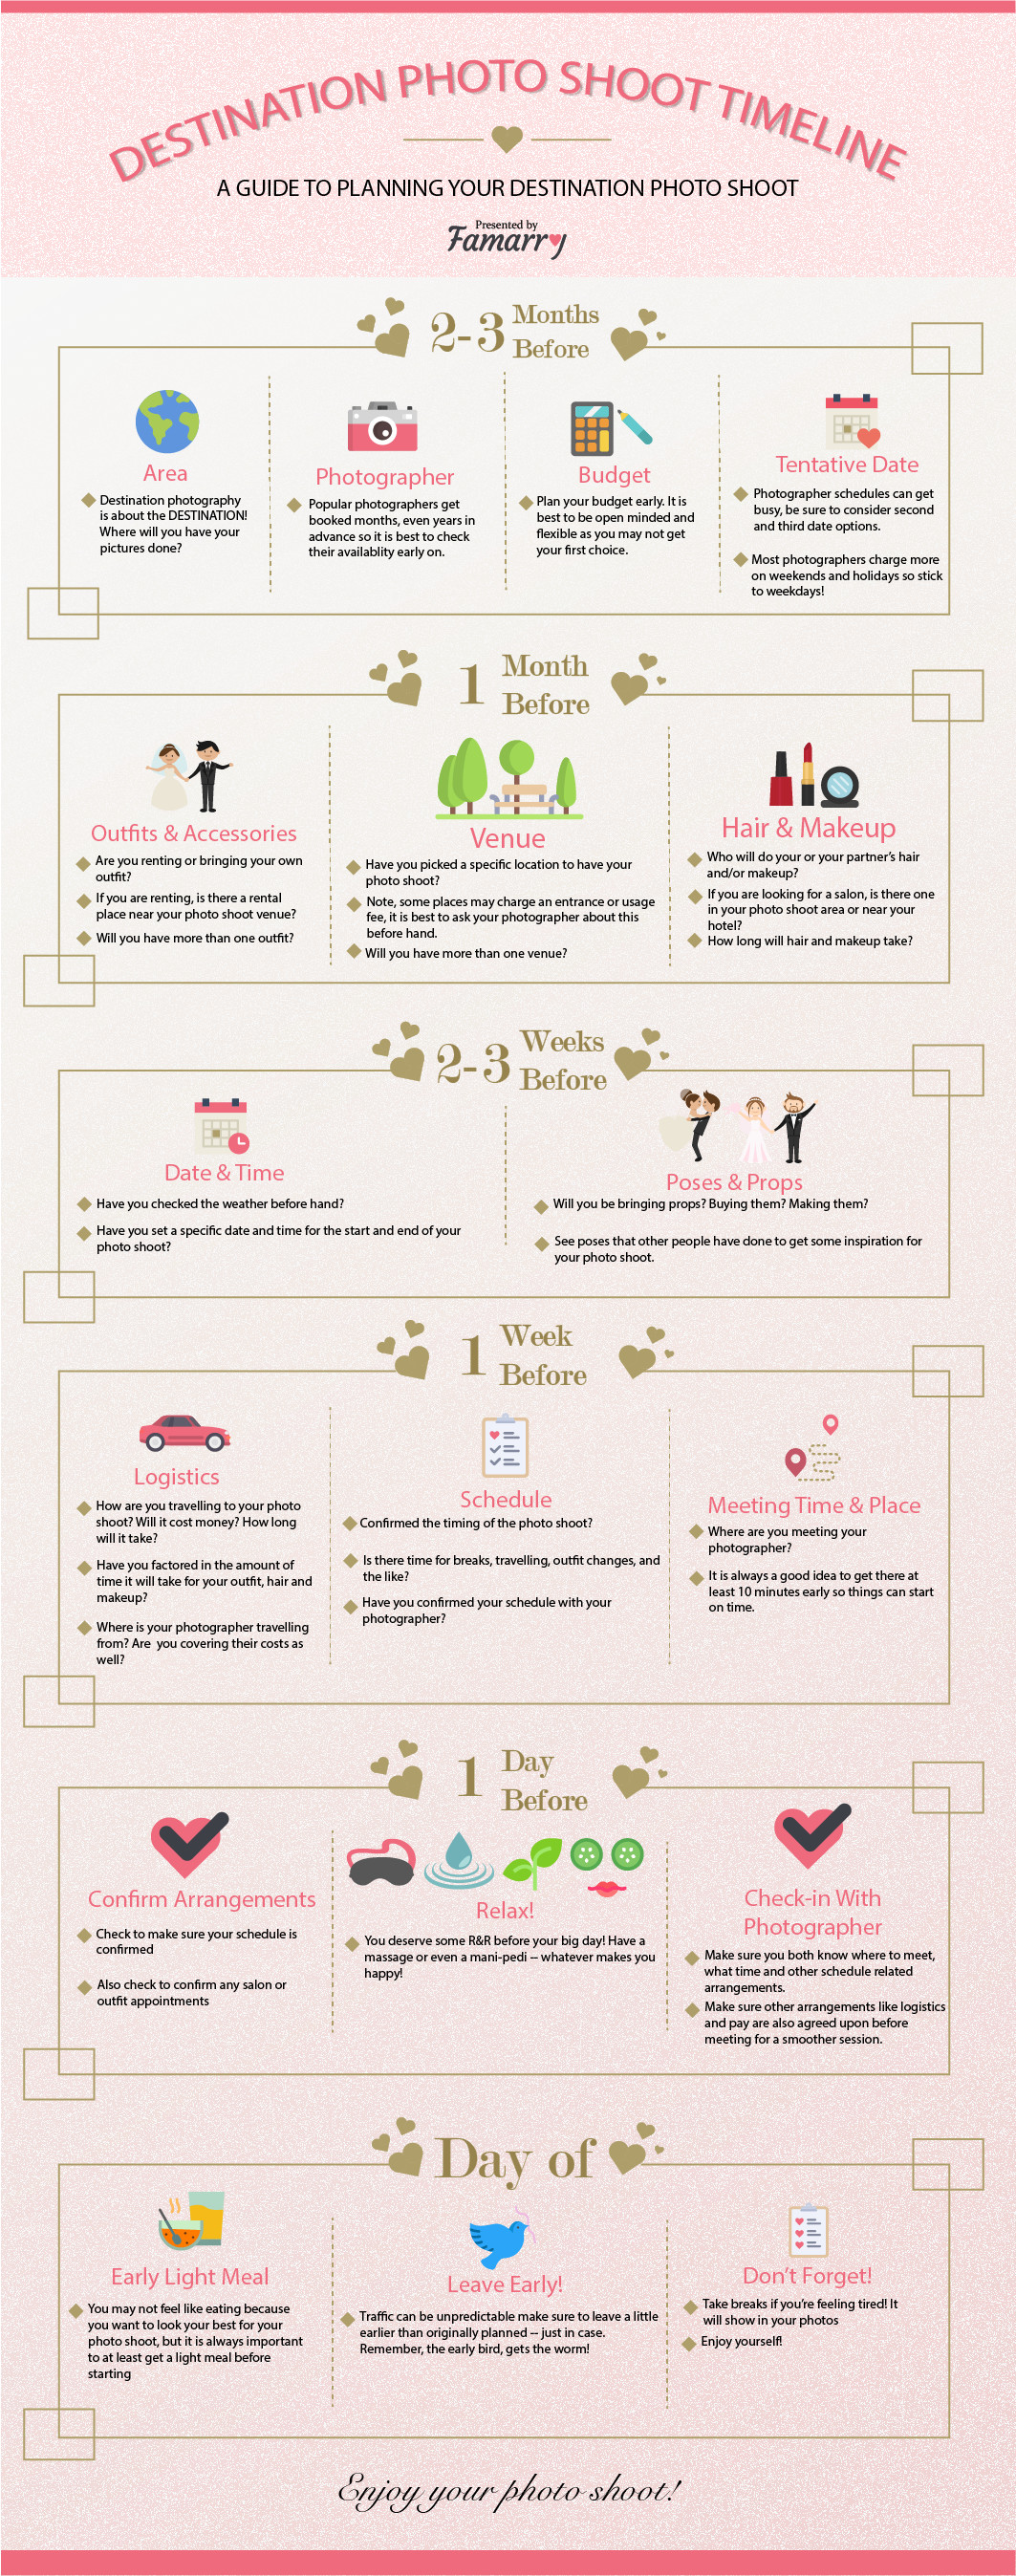 Schedule Plan Pre Wedding Destination Photo Shoot Infographic